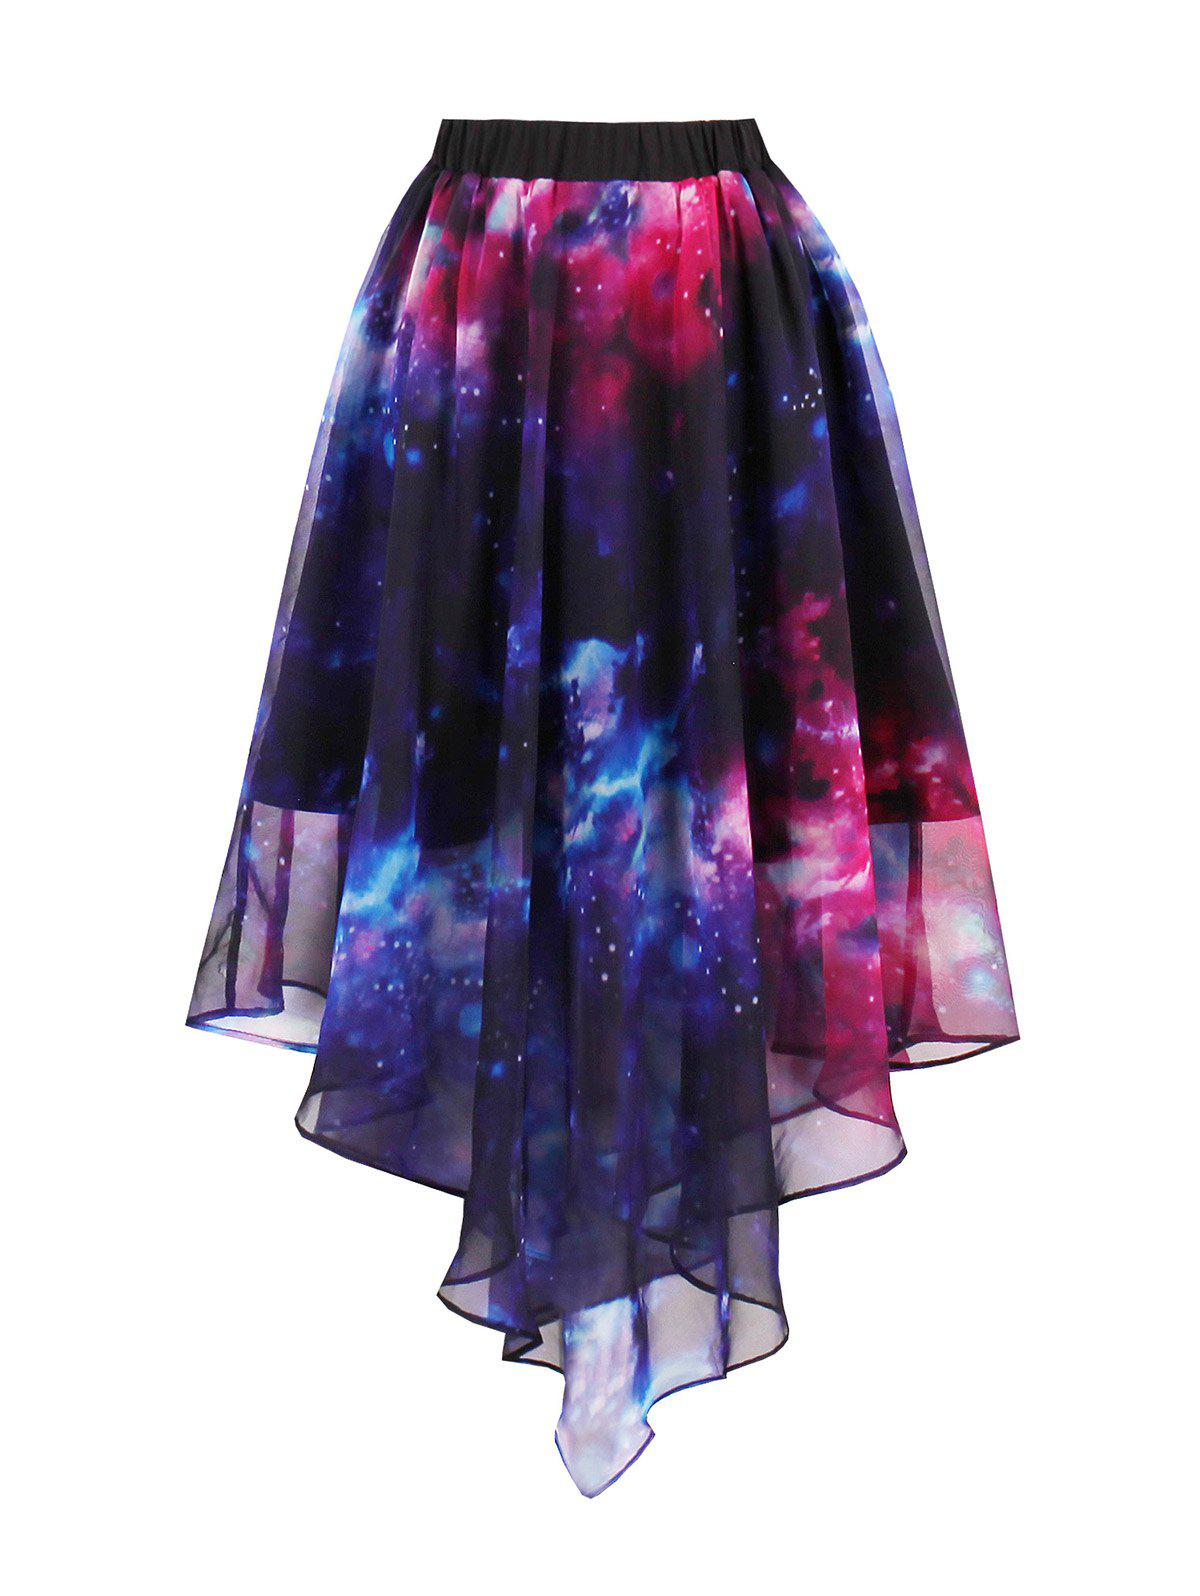 Starry Sky Print Chiffon Handkerchief SkirtWOMEN<br><br>Size: 2XL; Color: BLUE; Material: Polyester; Fabric Type: Chiffon; Length: Mid-Calf; Silhouette: Asymmetrical; Pattern Type: Galaxy,Print; Season: Fall,Spring,Summer; With Belt: No; Weight: 0.2800kg; Package Contents: 1 x Skirt;